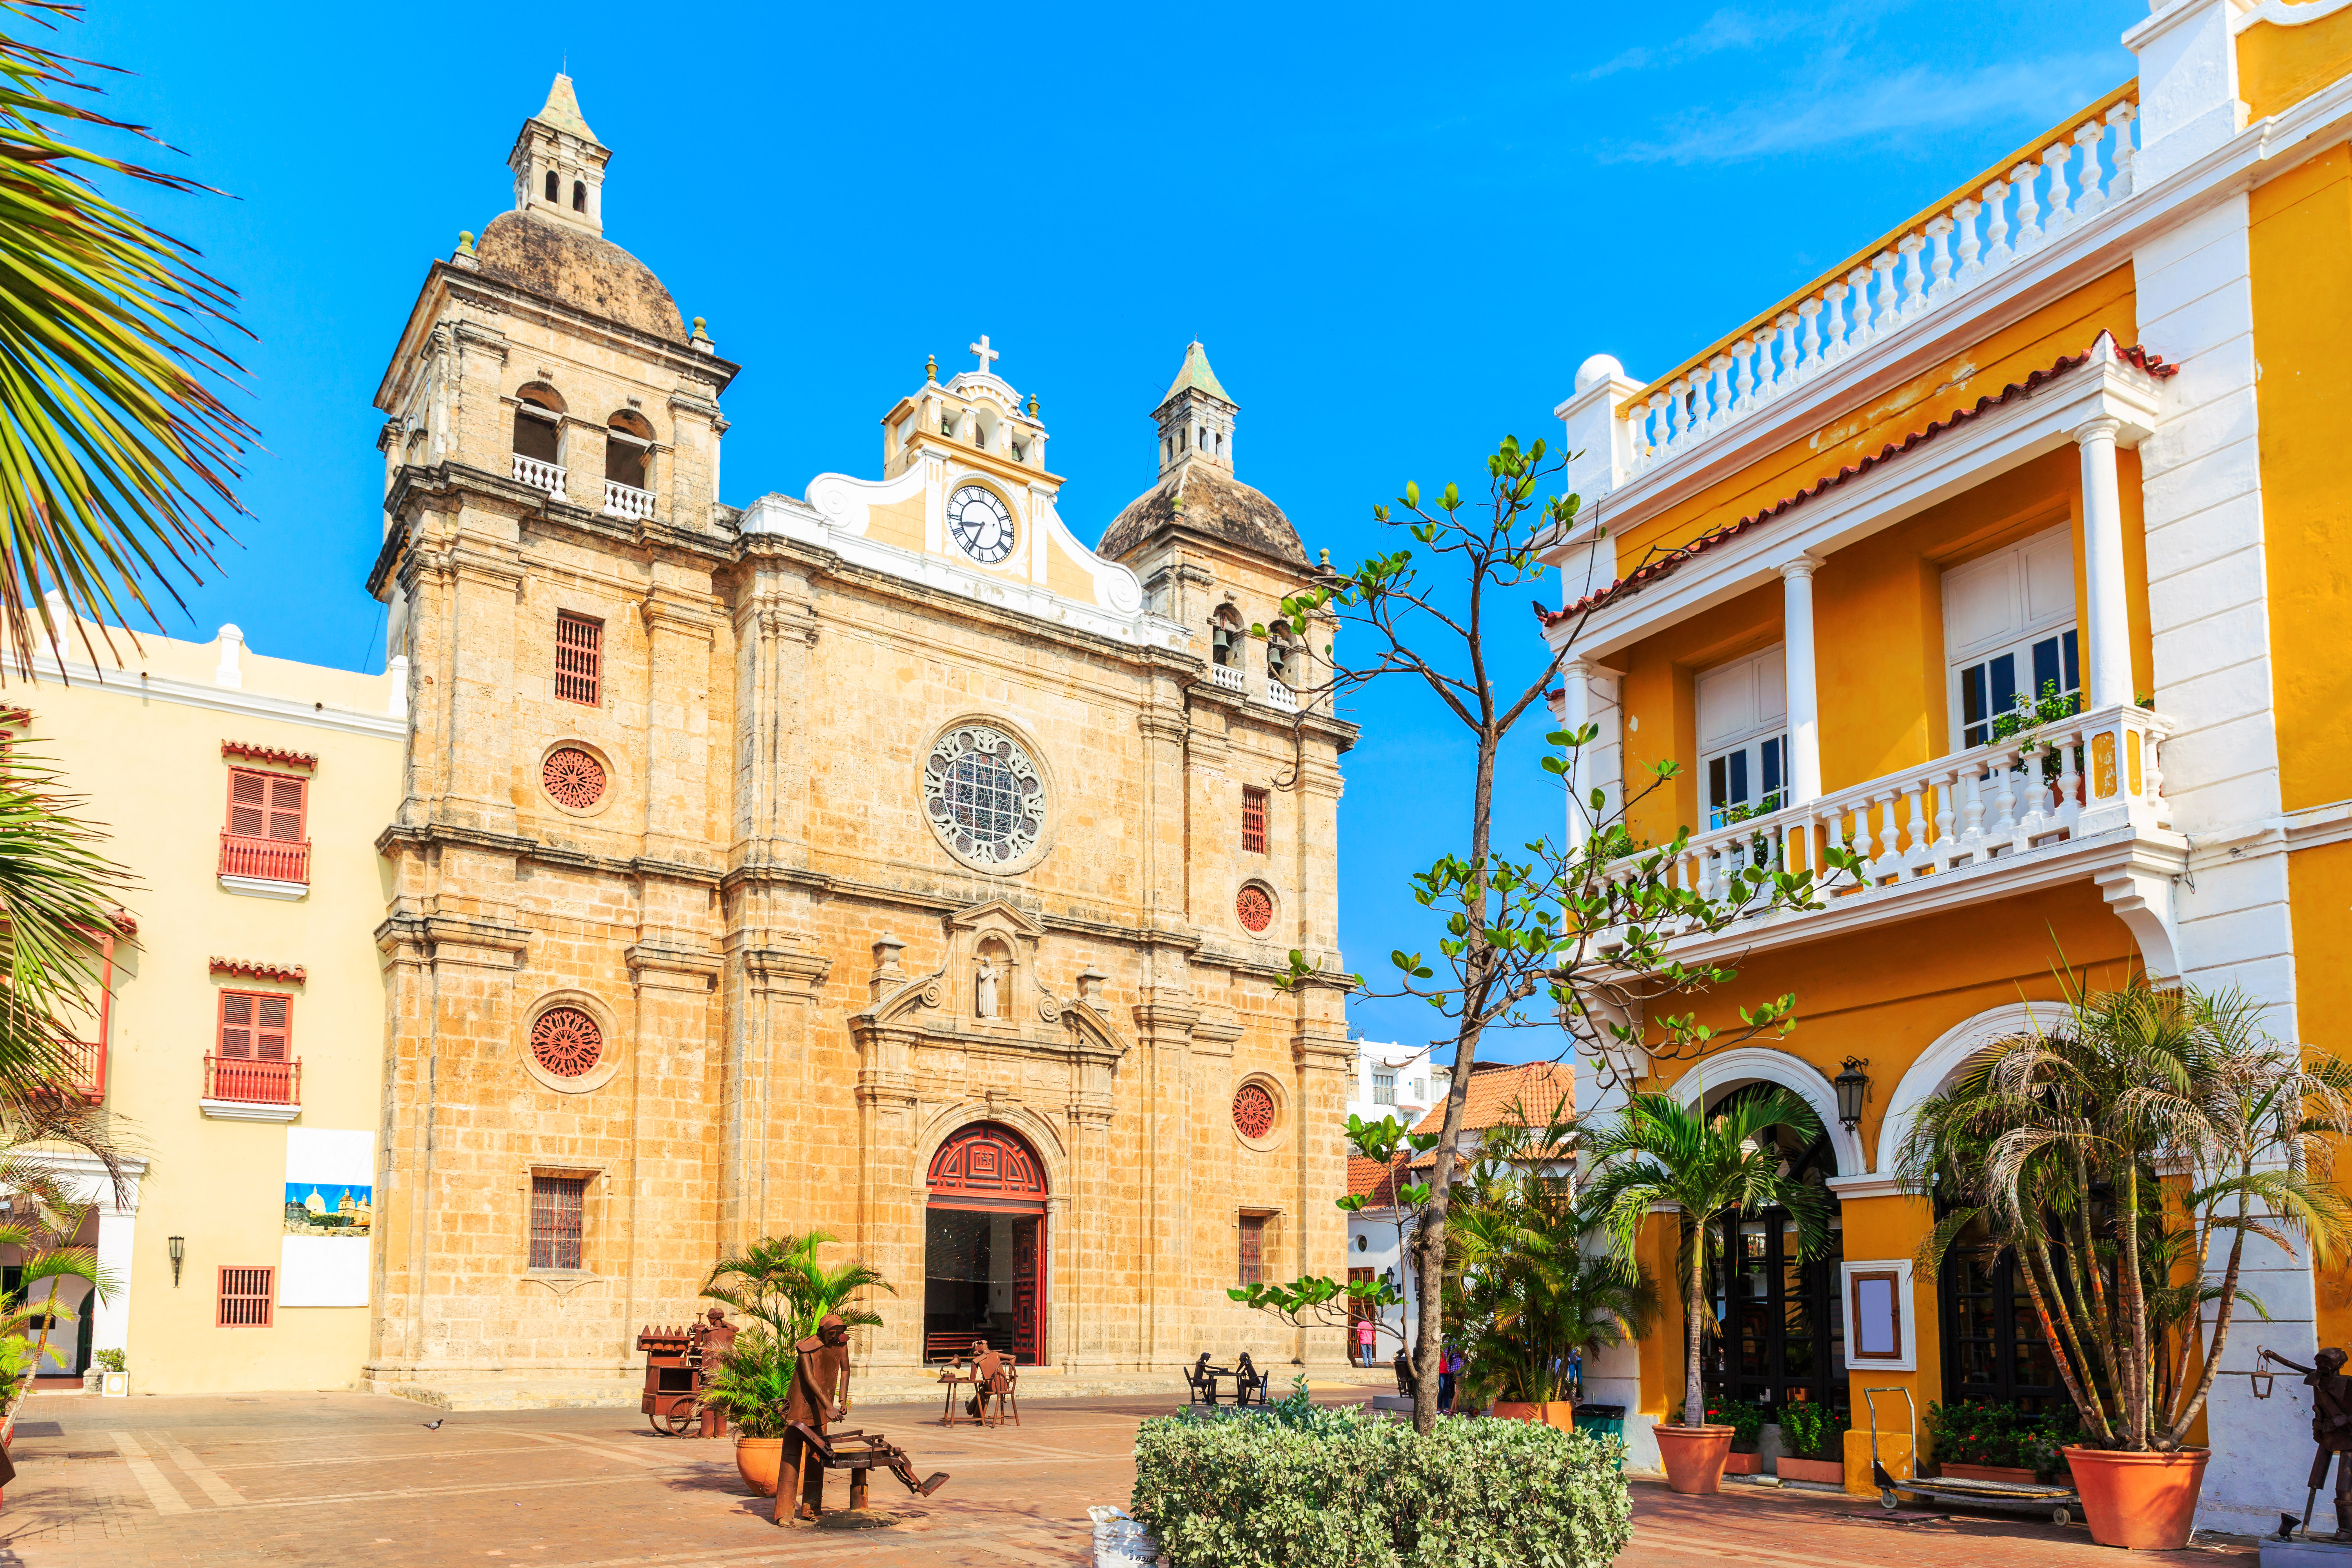 Cartagena, Colombia, South America. Photo Credit: Shutterstock